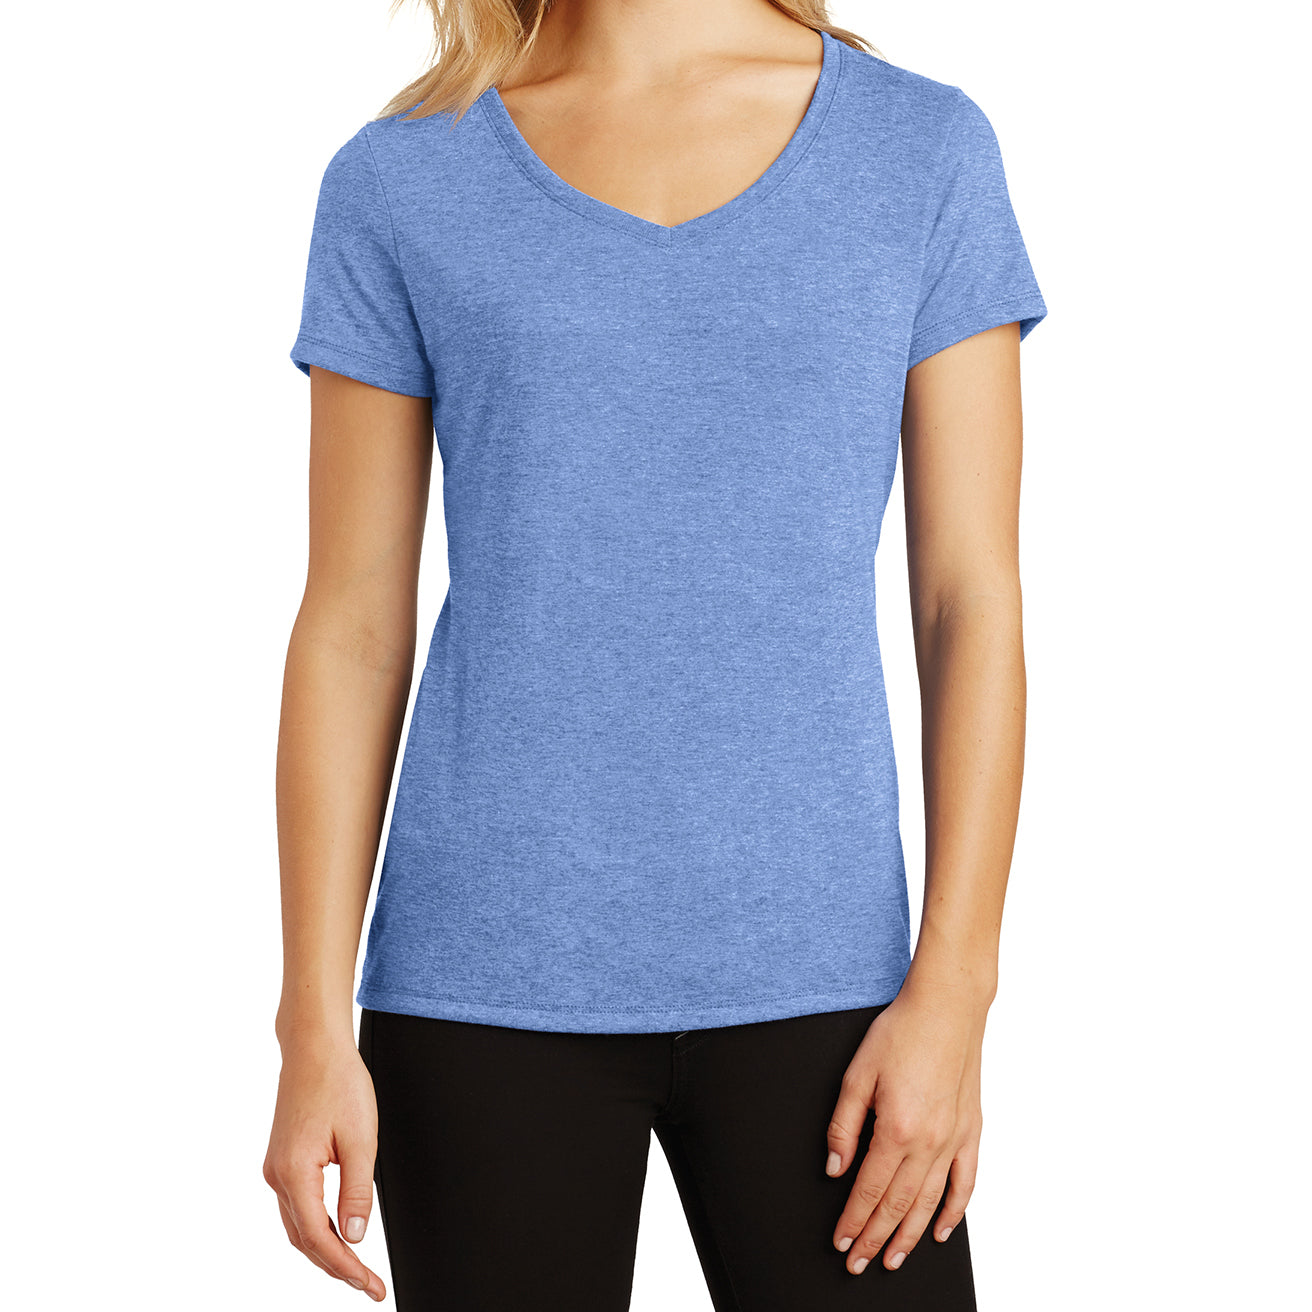 Women's Perfect Tri V-Neck Tee - Maritime Frost - Front